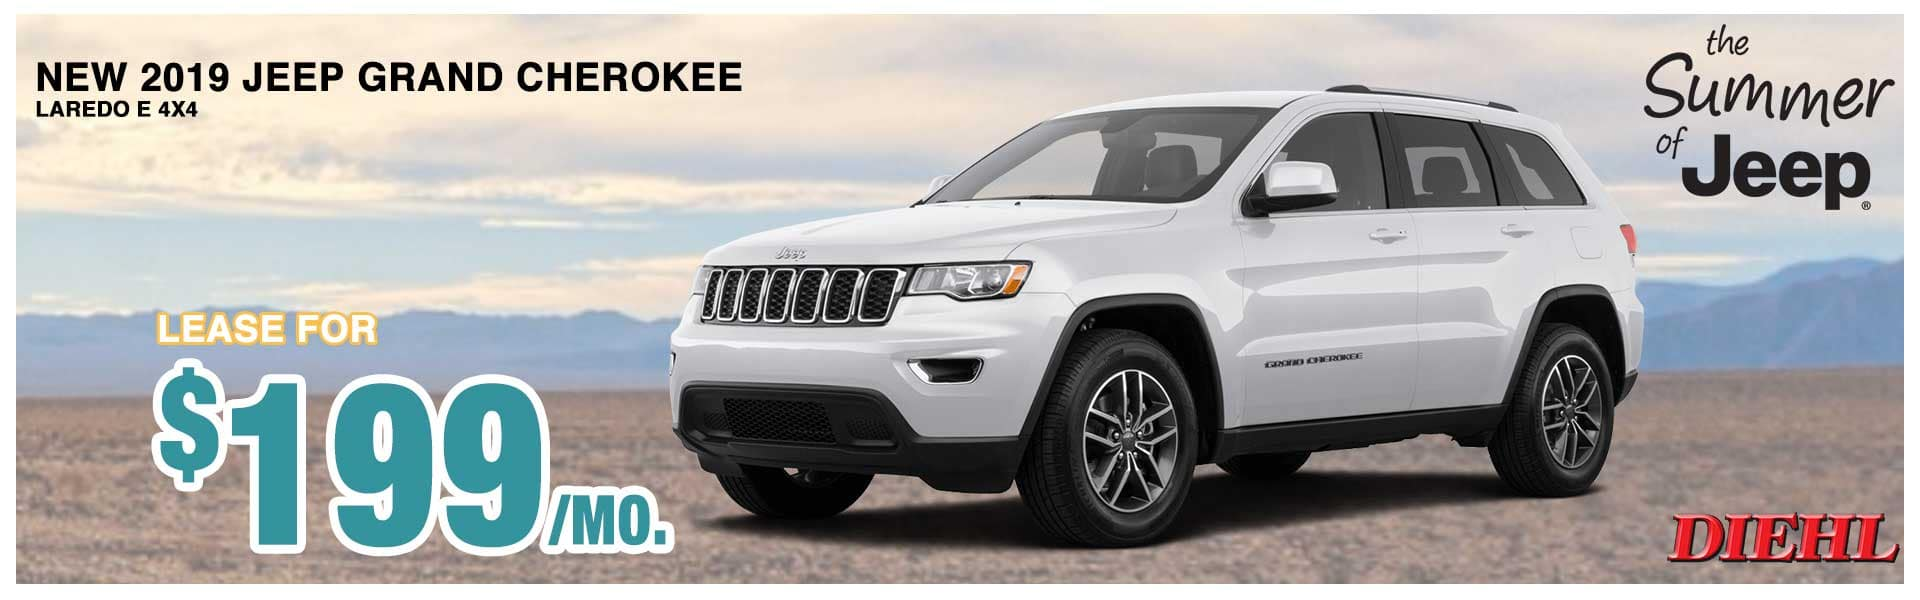 Diehl auto diehl SALEM Chrysler dodge jeep ram lease special financing summer clearance event summer of jeep new vehicle special new special